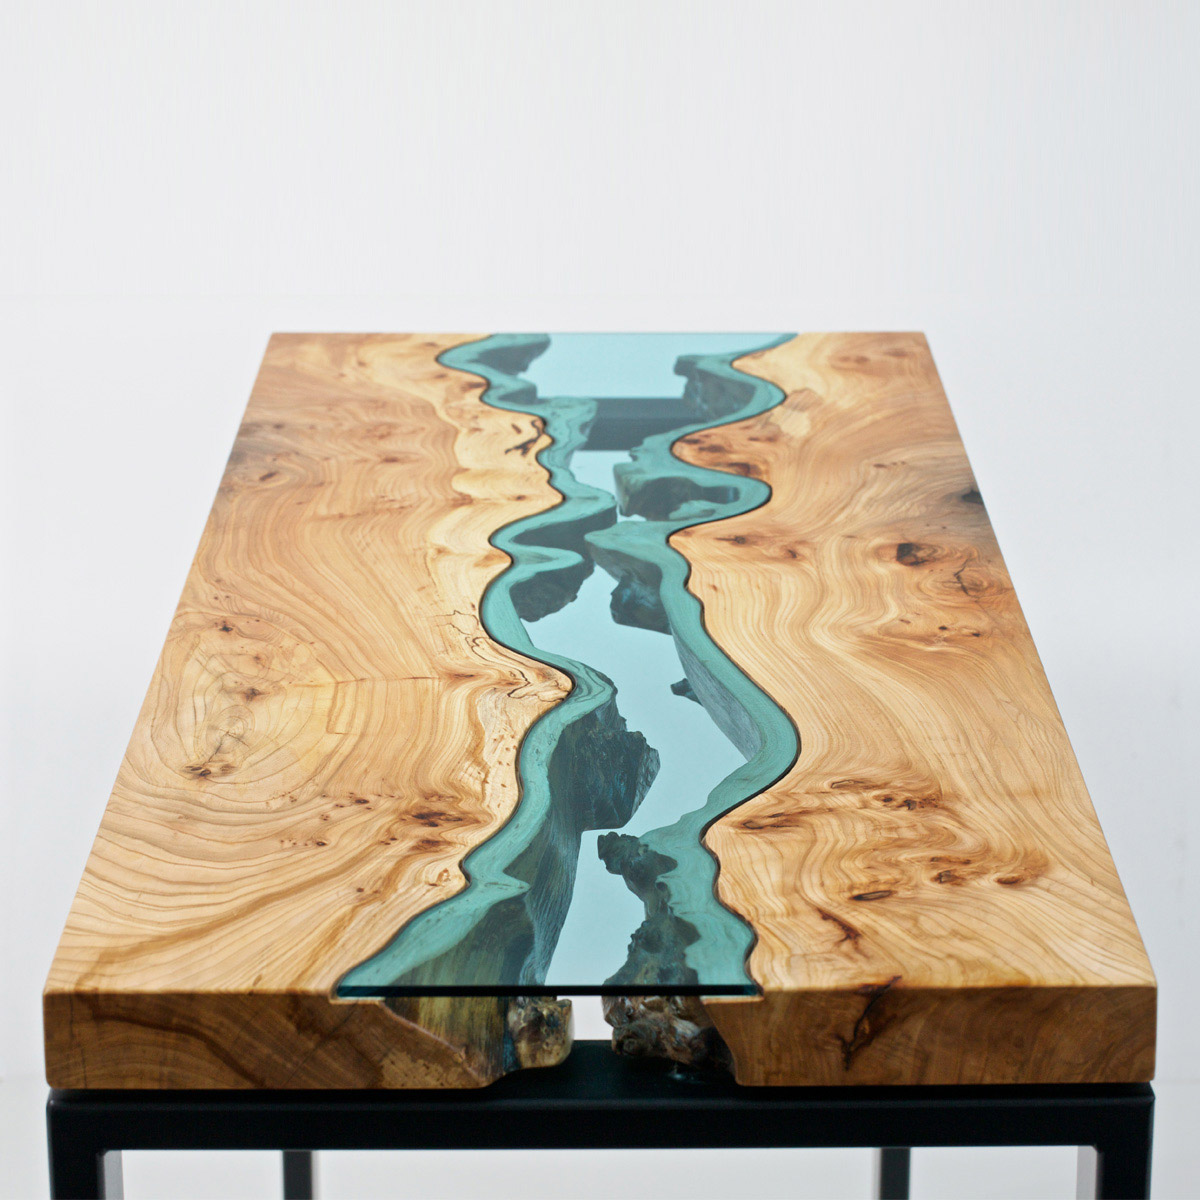 lake-river-furniture-greg-klassen-05